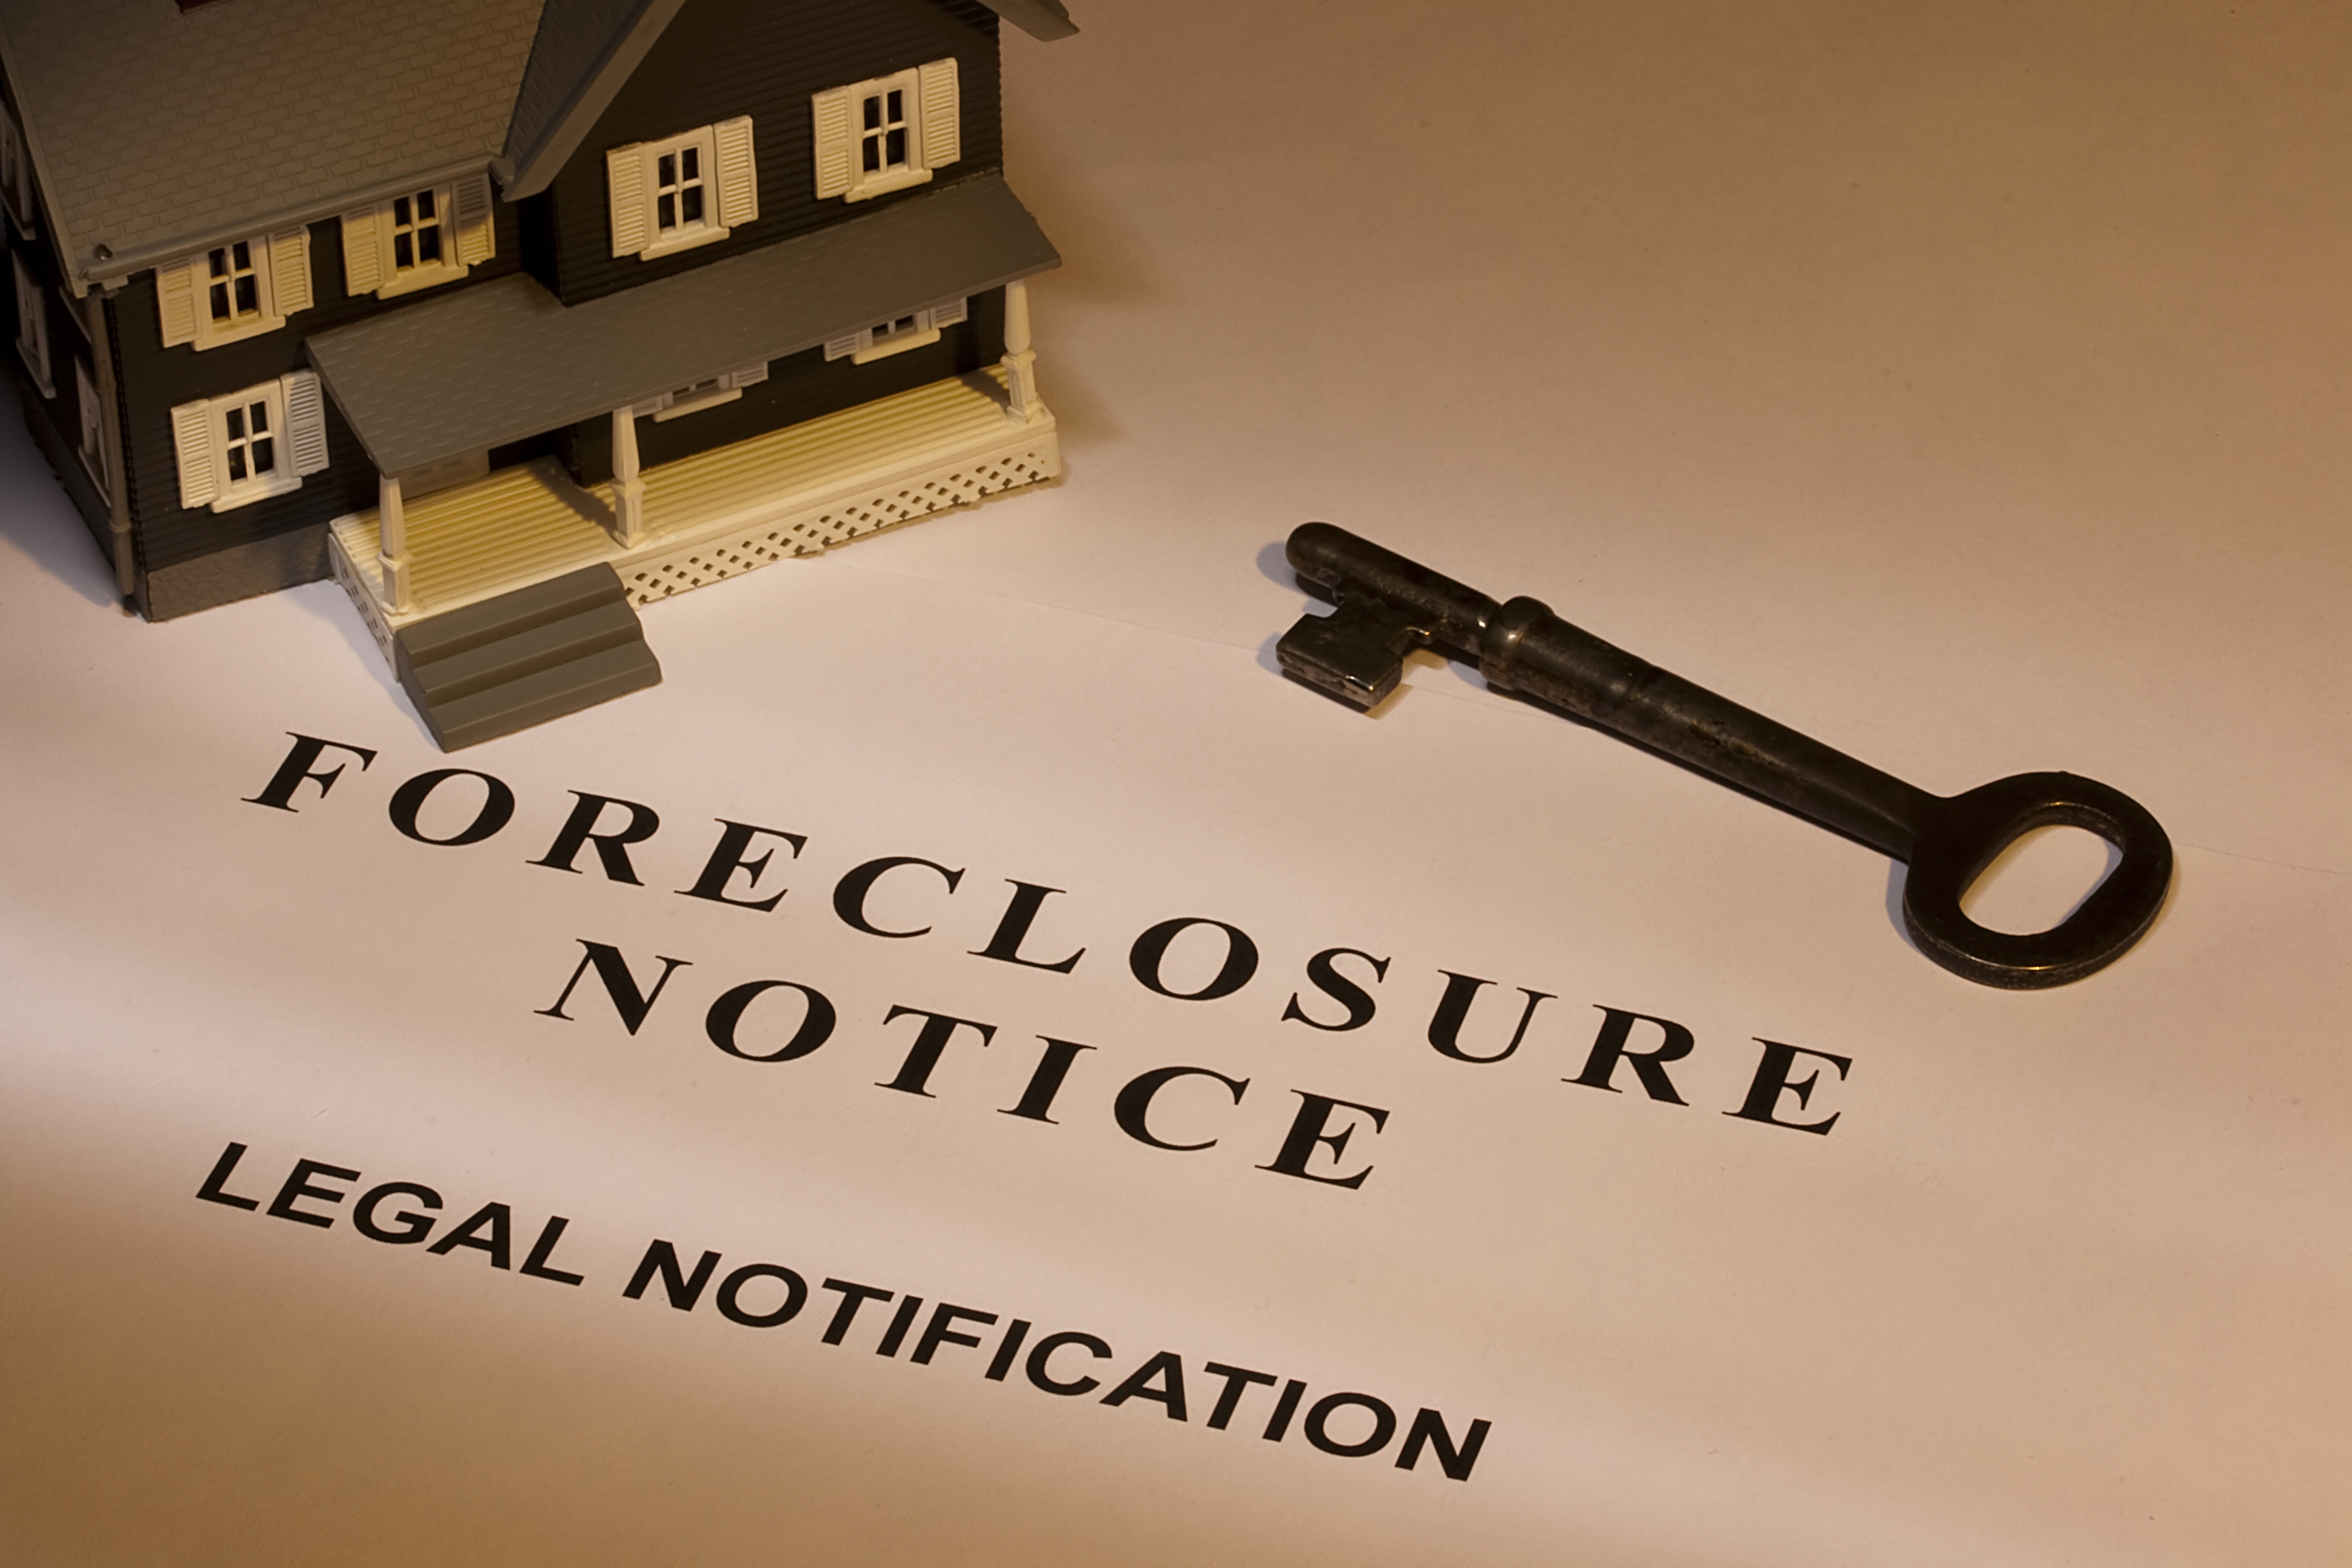 Bank Owned Foreclosed Properties Archives - DFW Property